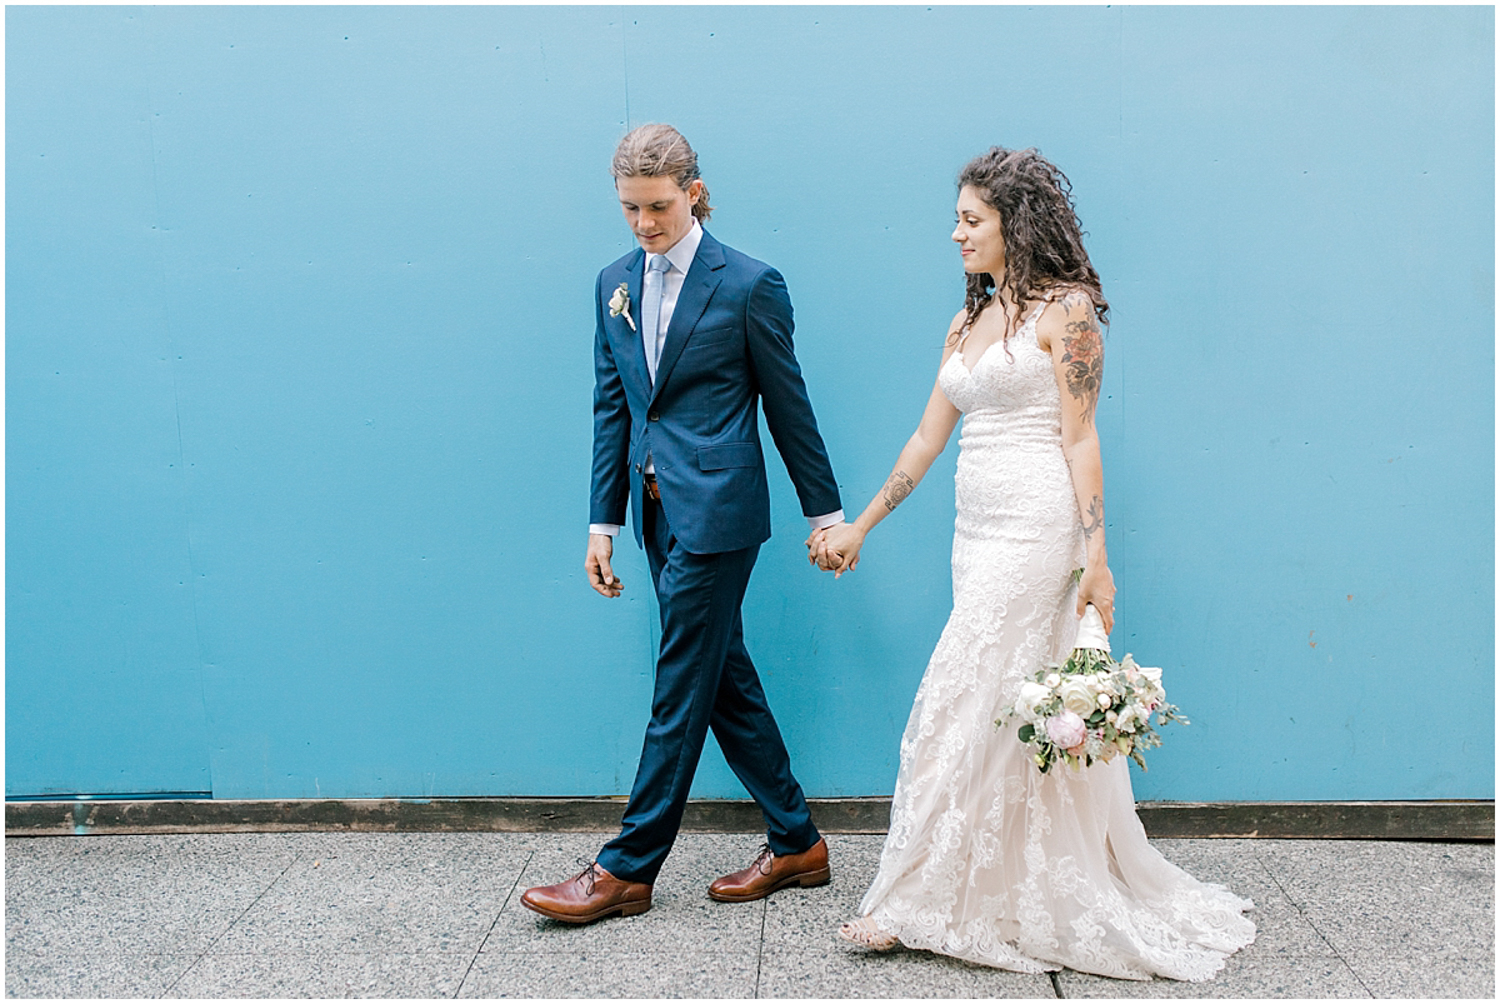 Seattle City Hall Courthouse Wedding Elopement | Seattle Wedding Photographer | Emma Rose Company | Downtown Seattle Wedding Inspiration | Pacific Northwest Elopement | Courthouse Elopement in the City-66.jpg